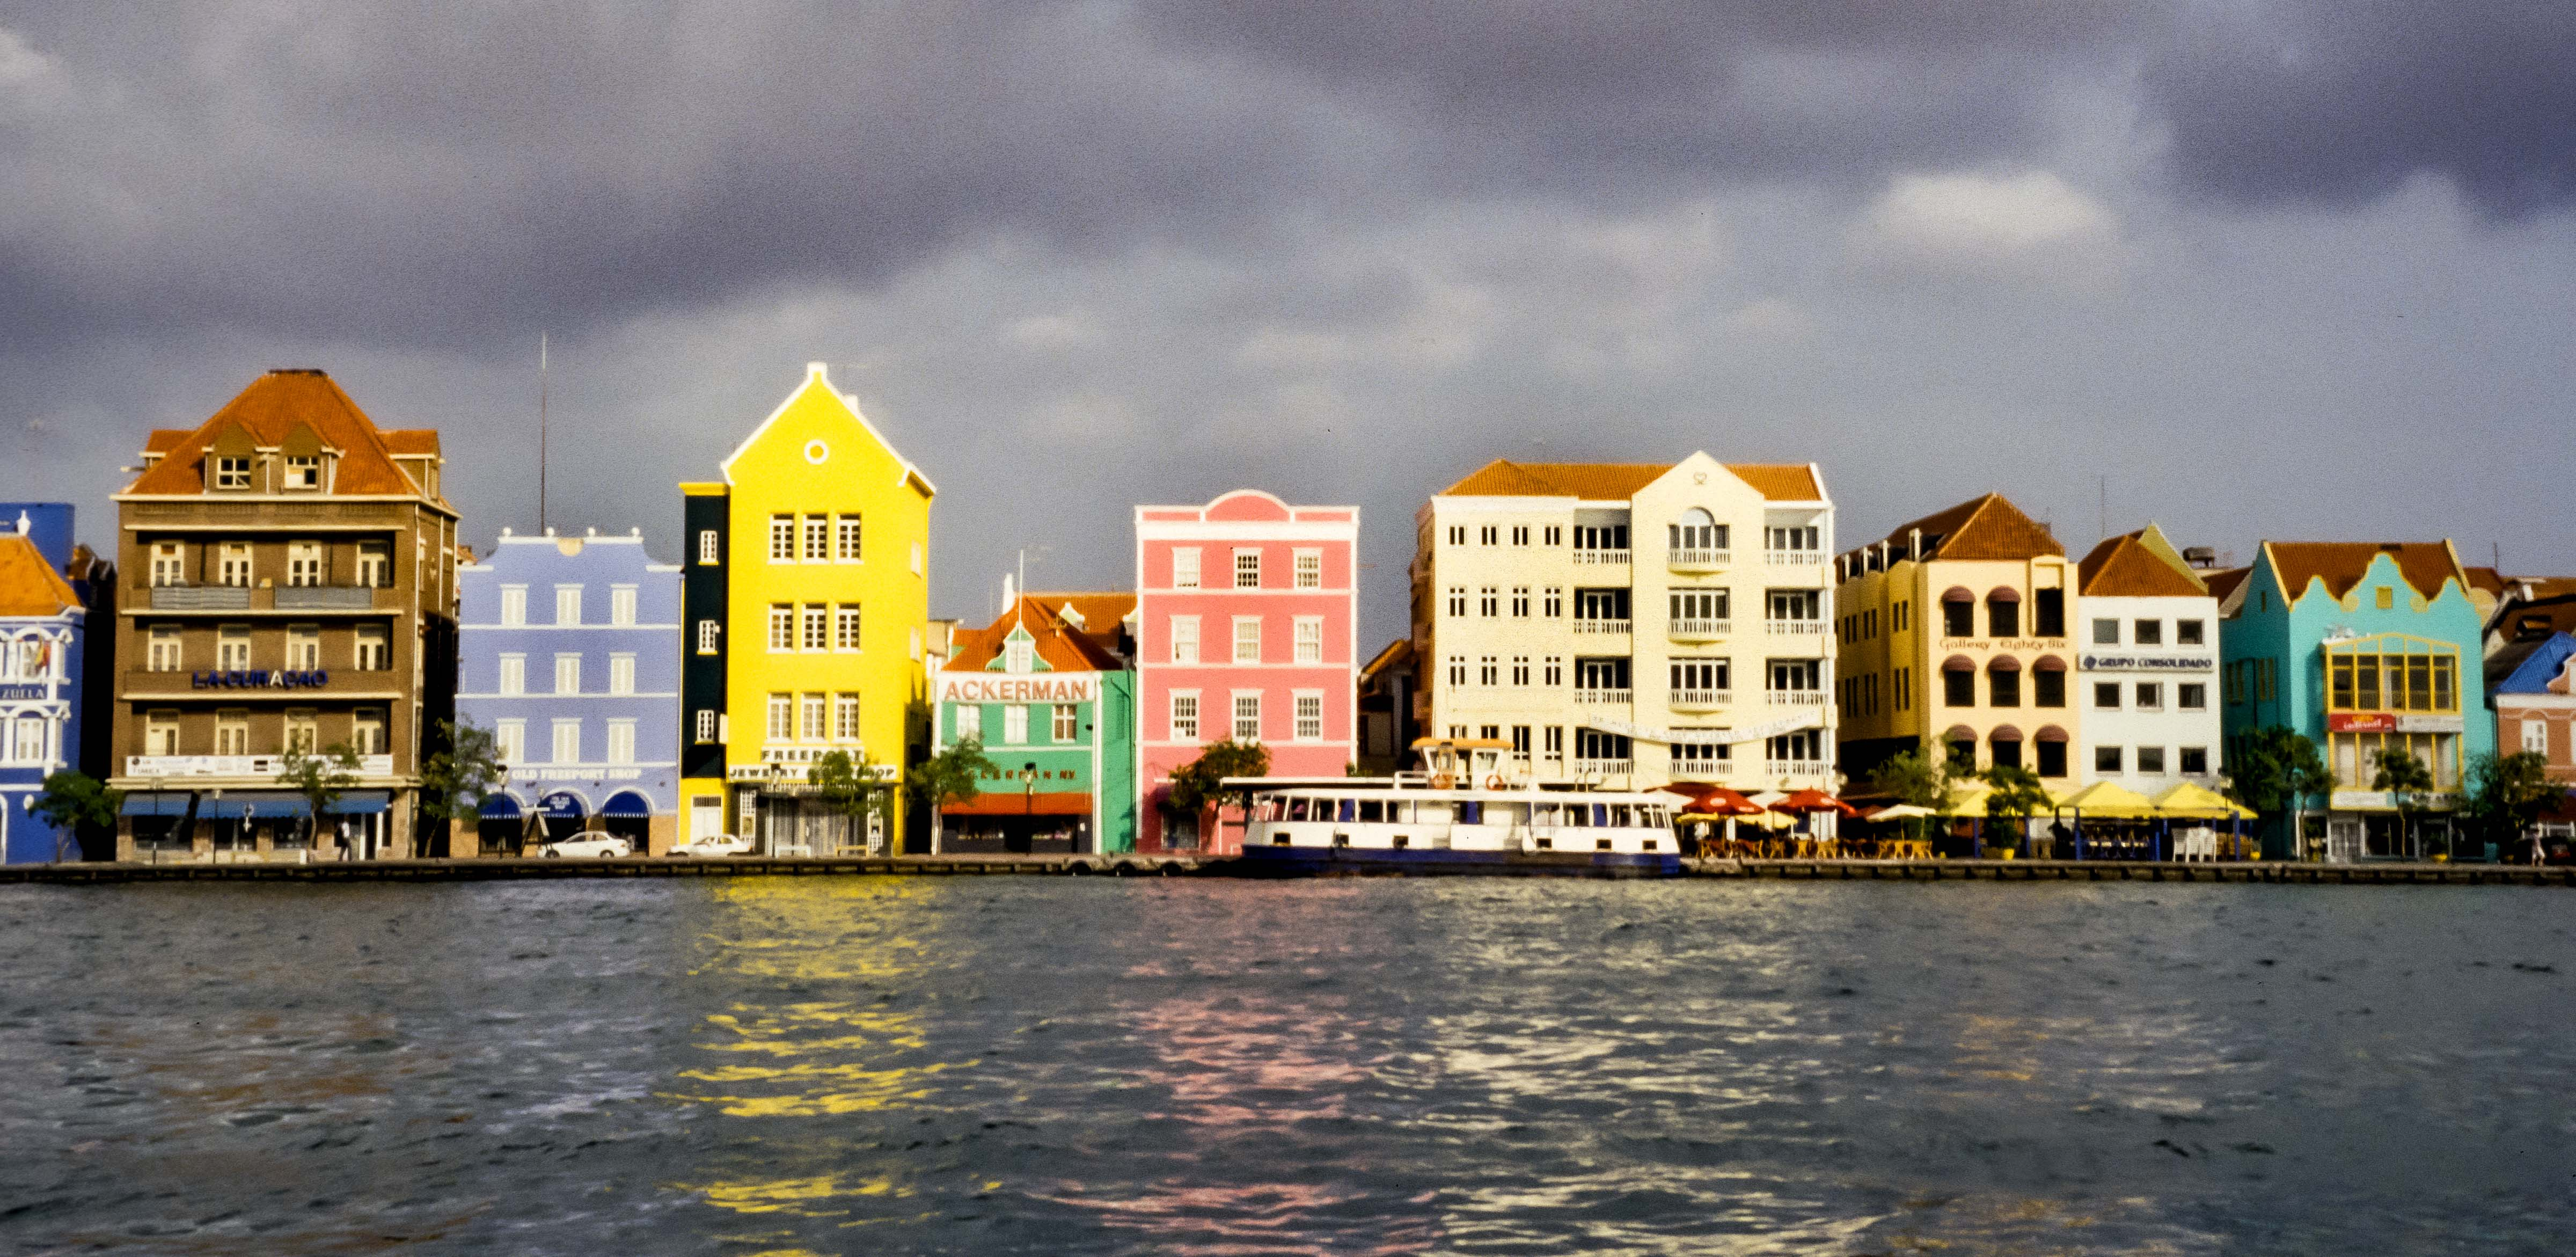 Curacao, Waterfront Promenade, 2000 – This section of waterfront in Curacao is notable because of its varied architecture and color.